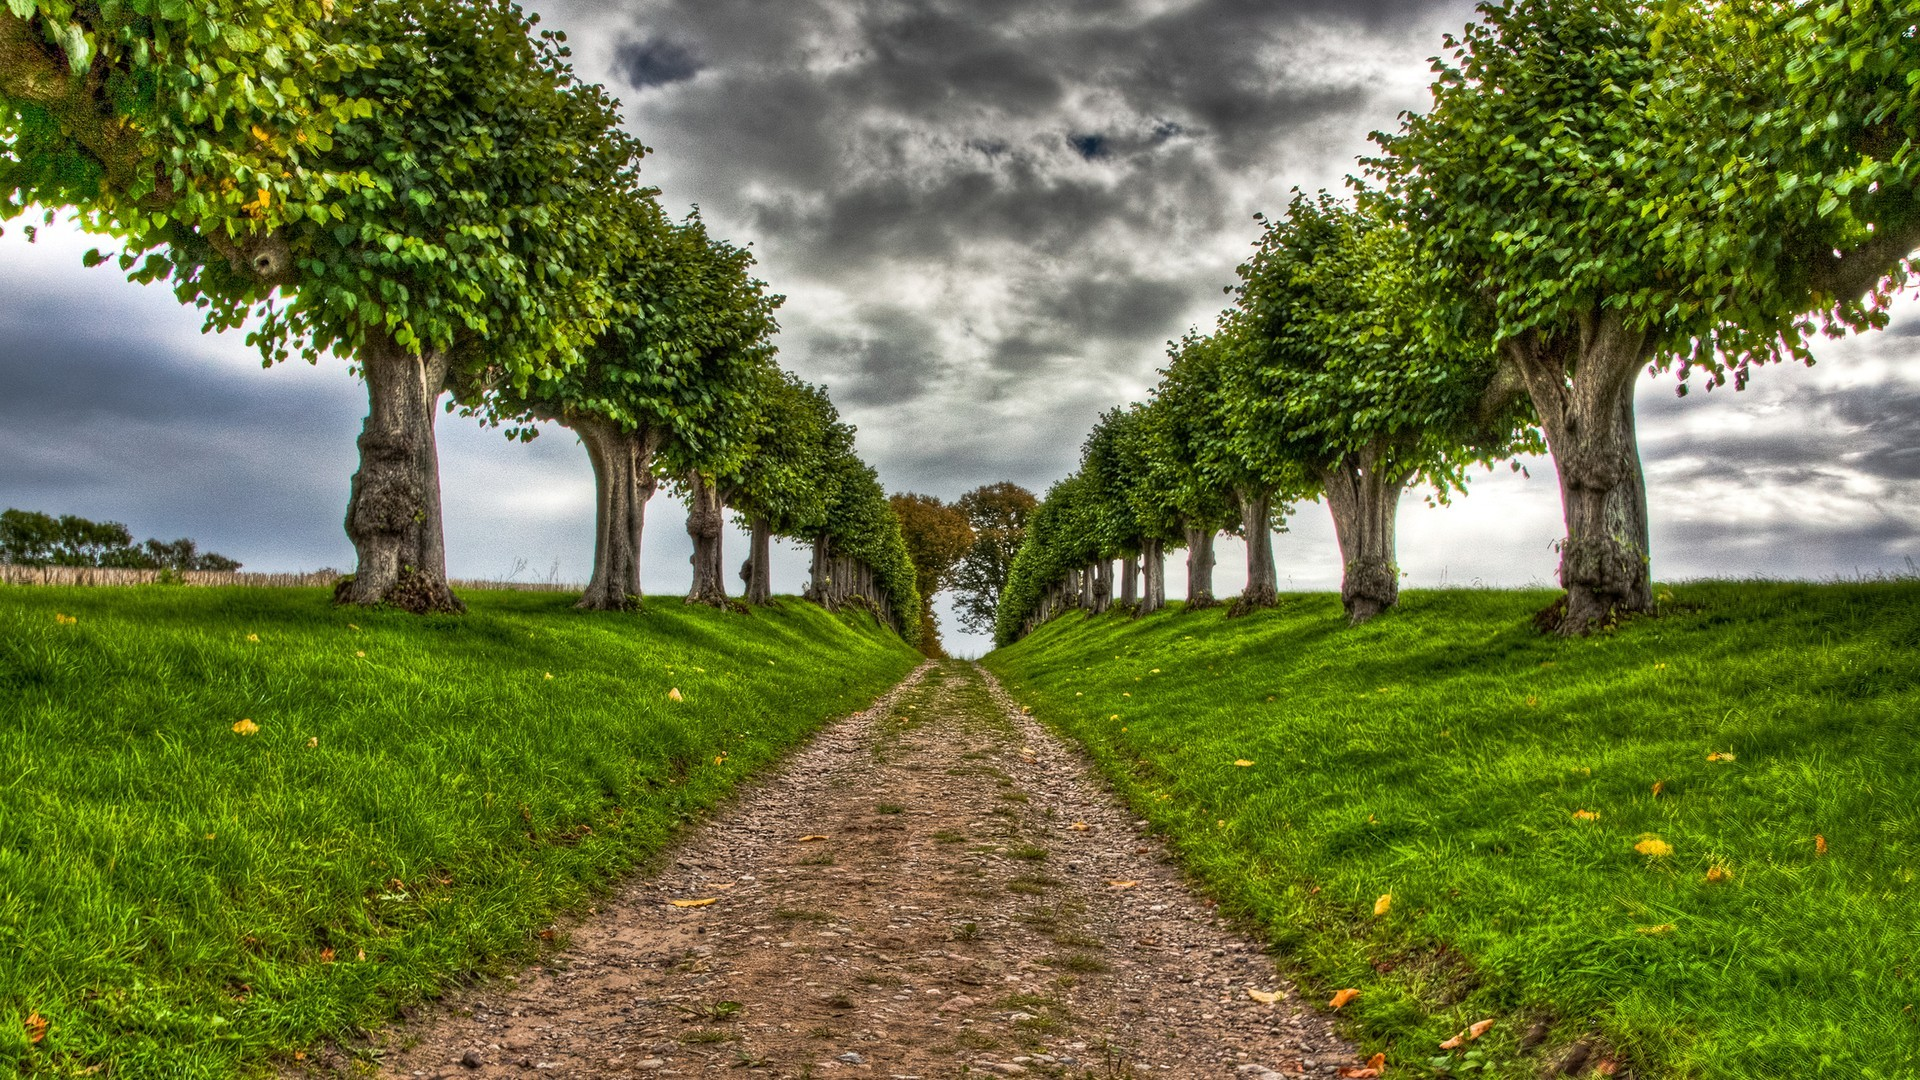 clouds Landscapes Trees paths HD Wallpaper